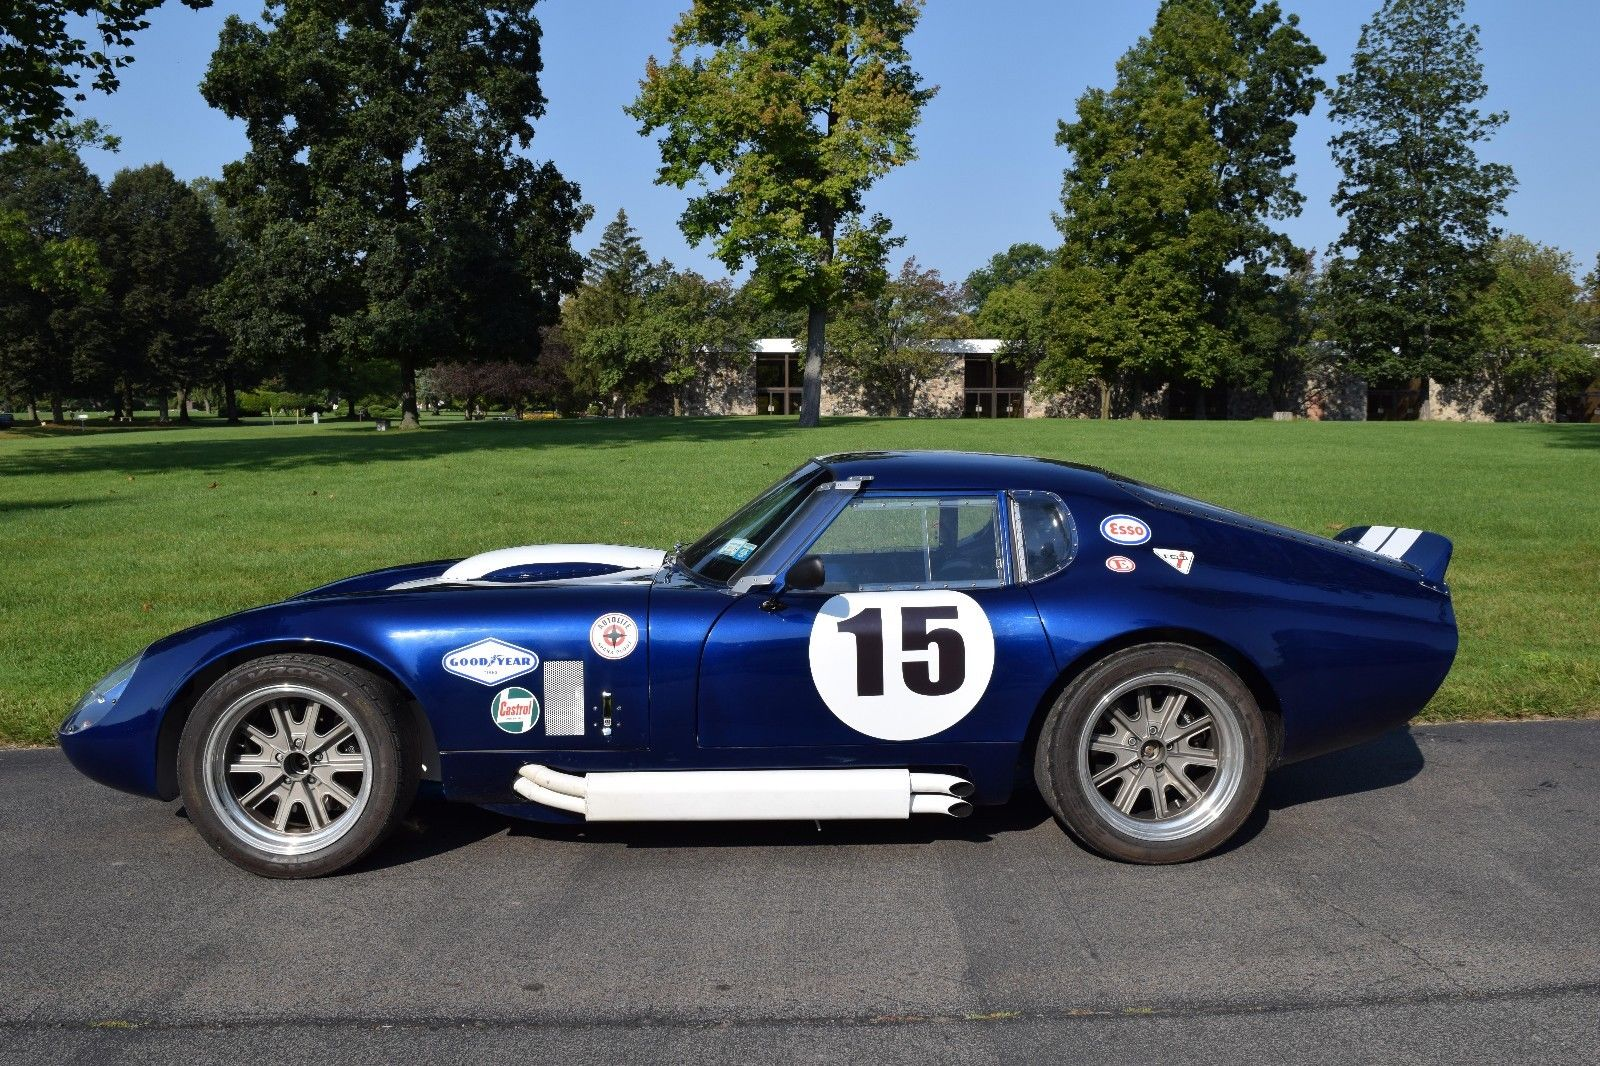 Mercedes Benz Of Rochester >> bored and stroked 1965 Replica Shelby Daytona Coupe for sale